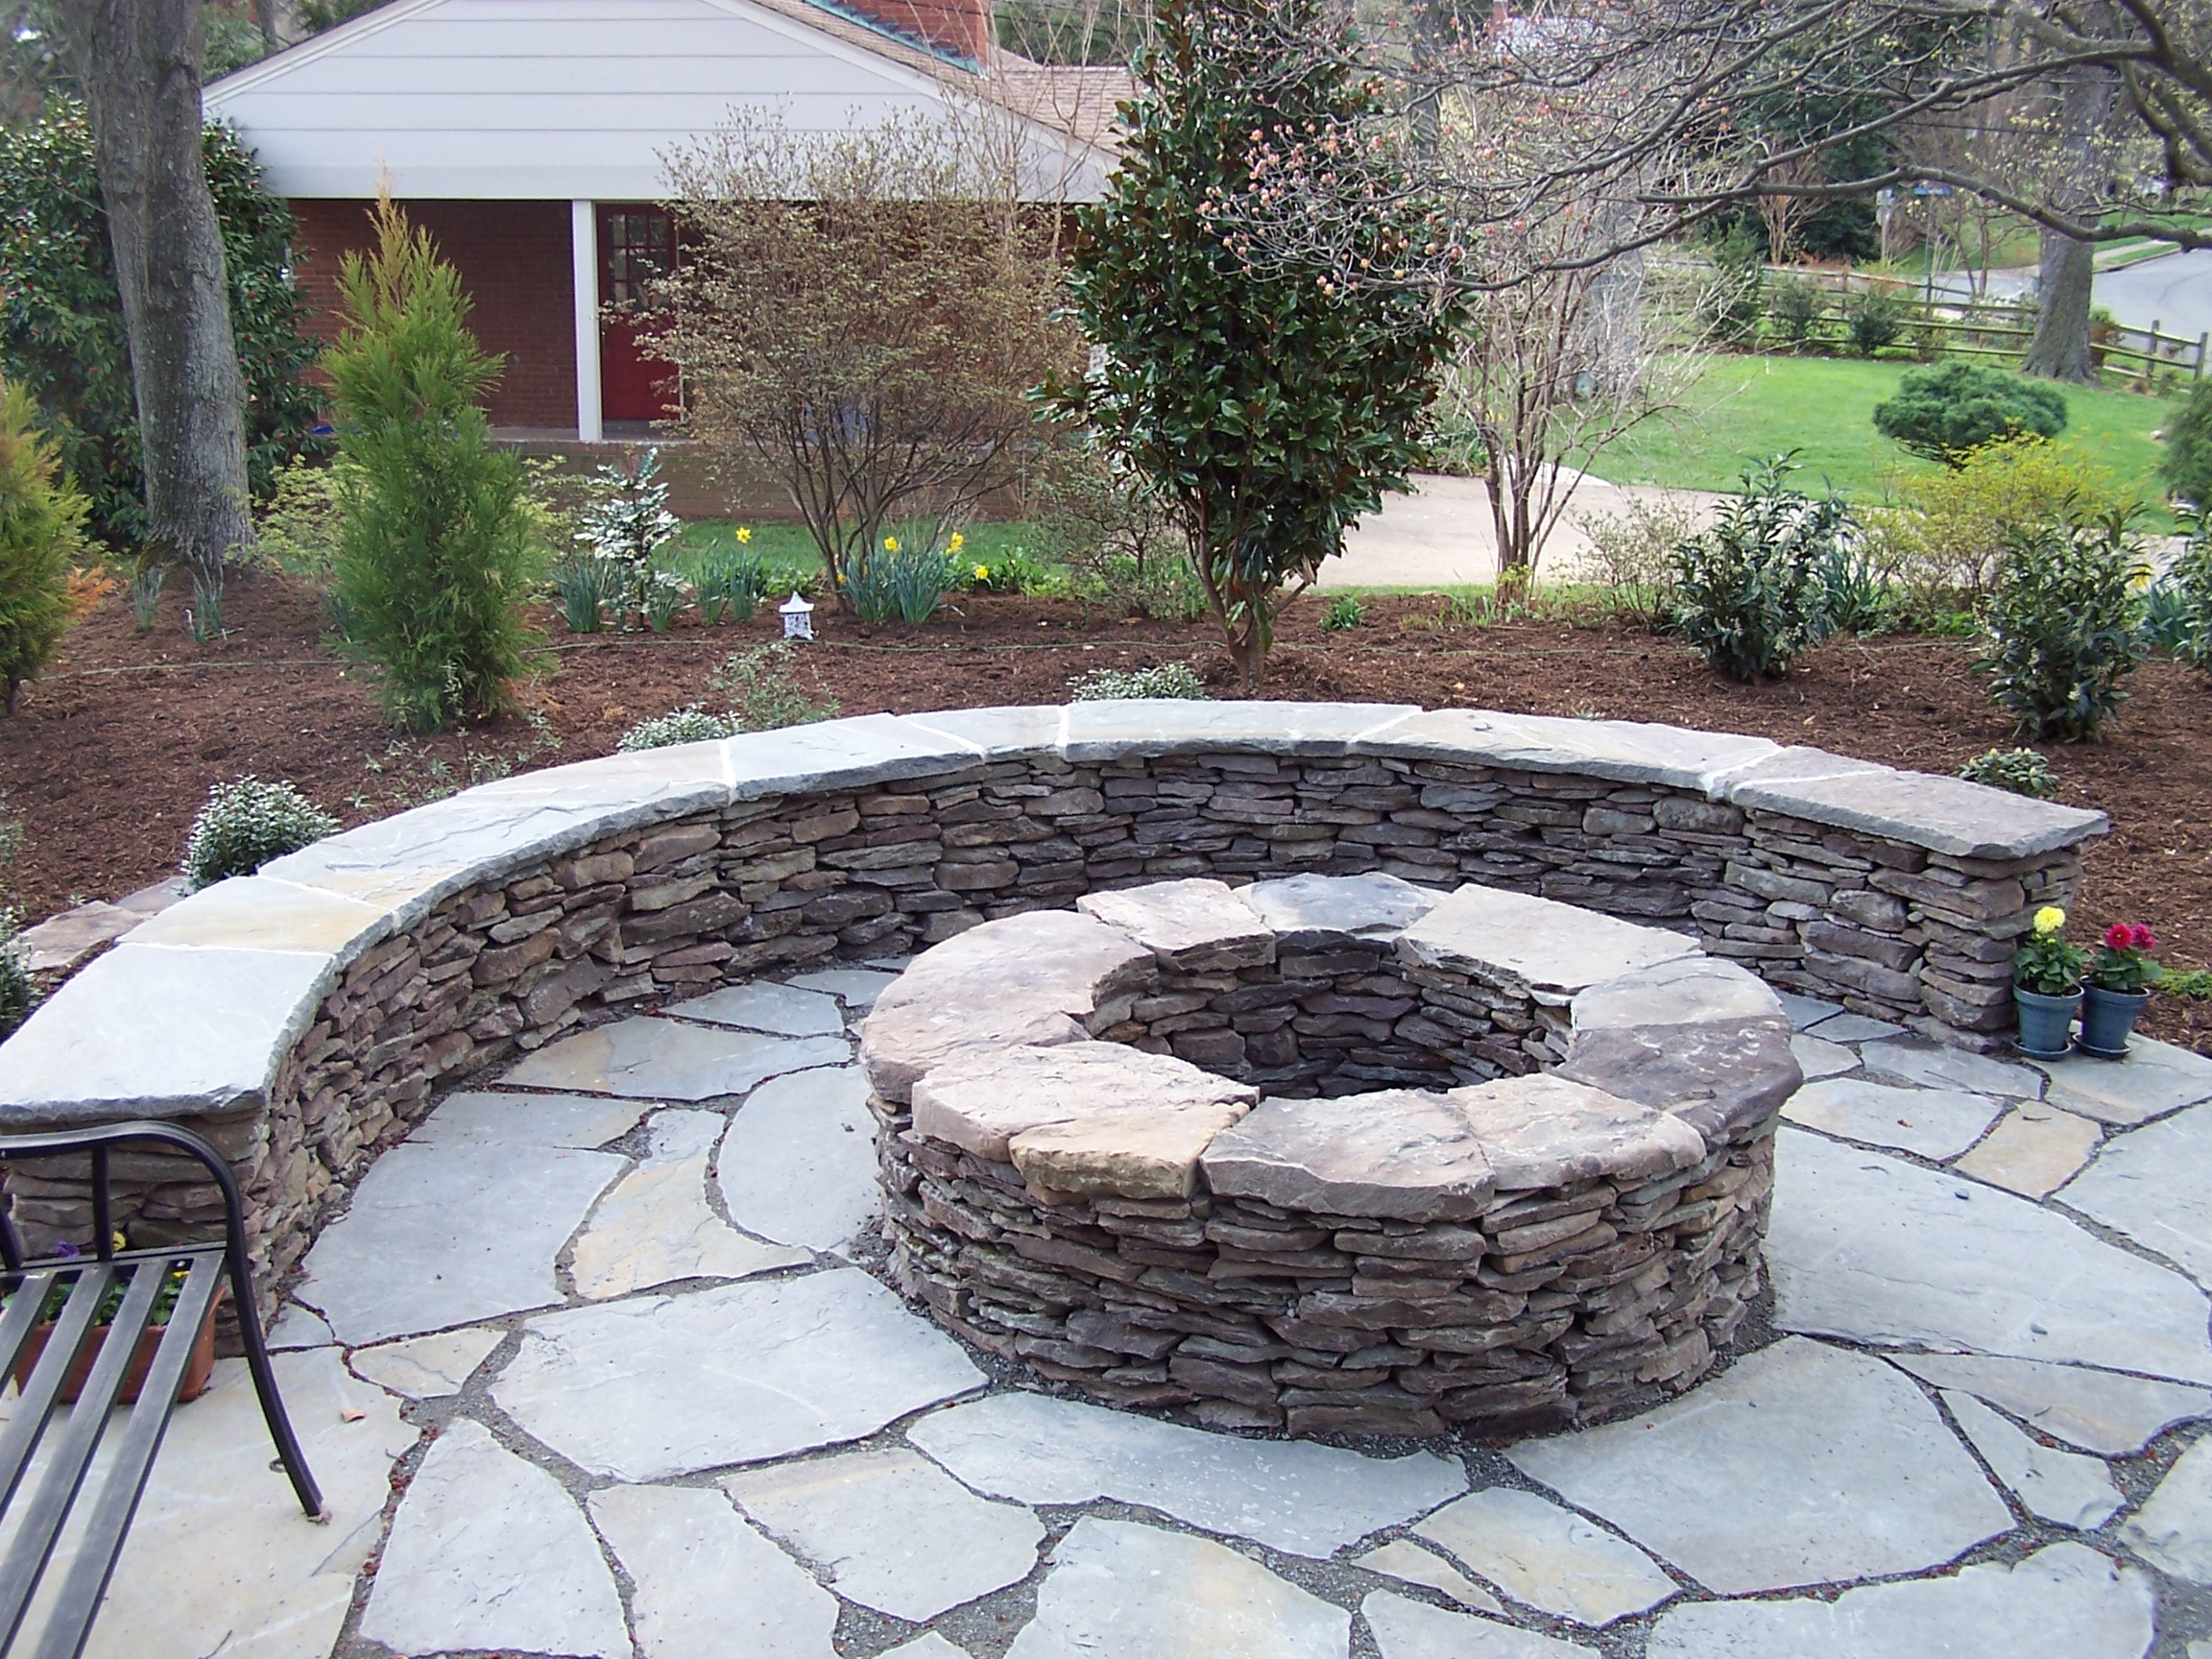 organic house interior design html with Large Natural Stone Fire Pit on Teddy Bear Logo also The Paragon Of Modern Organic moreover Frank Lloyd Wright House Photo1 further Organic Shape in addition 287c0b672b1deae2.